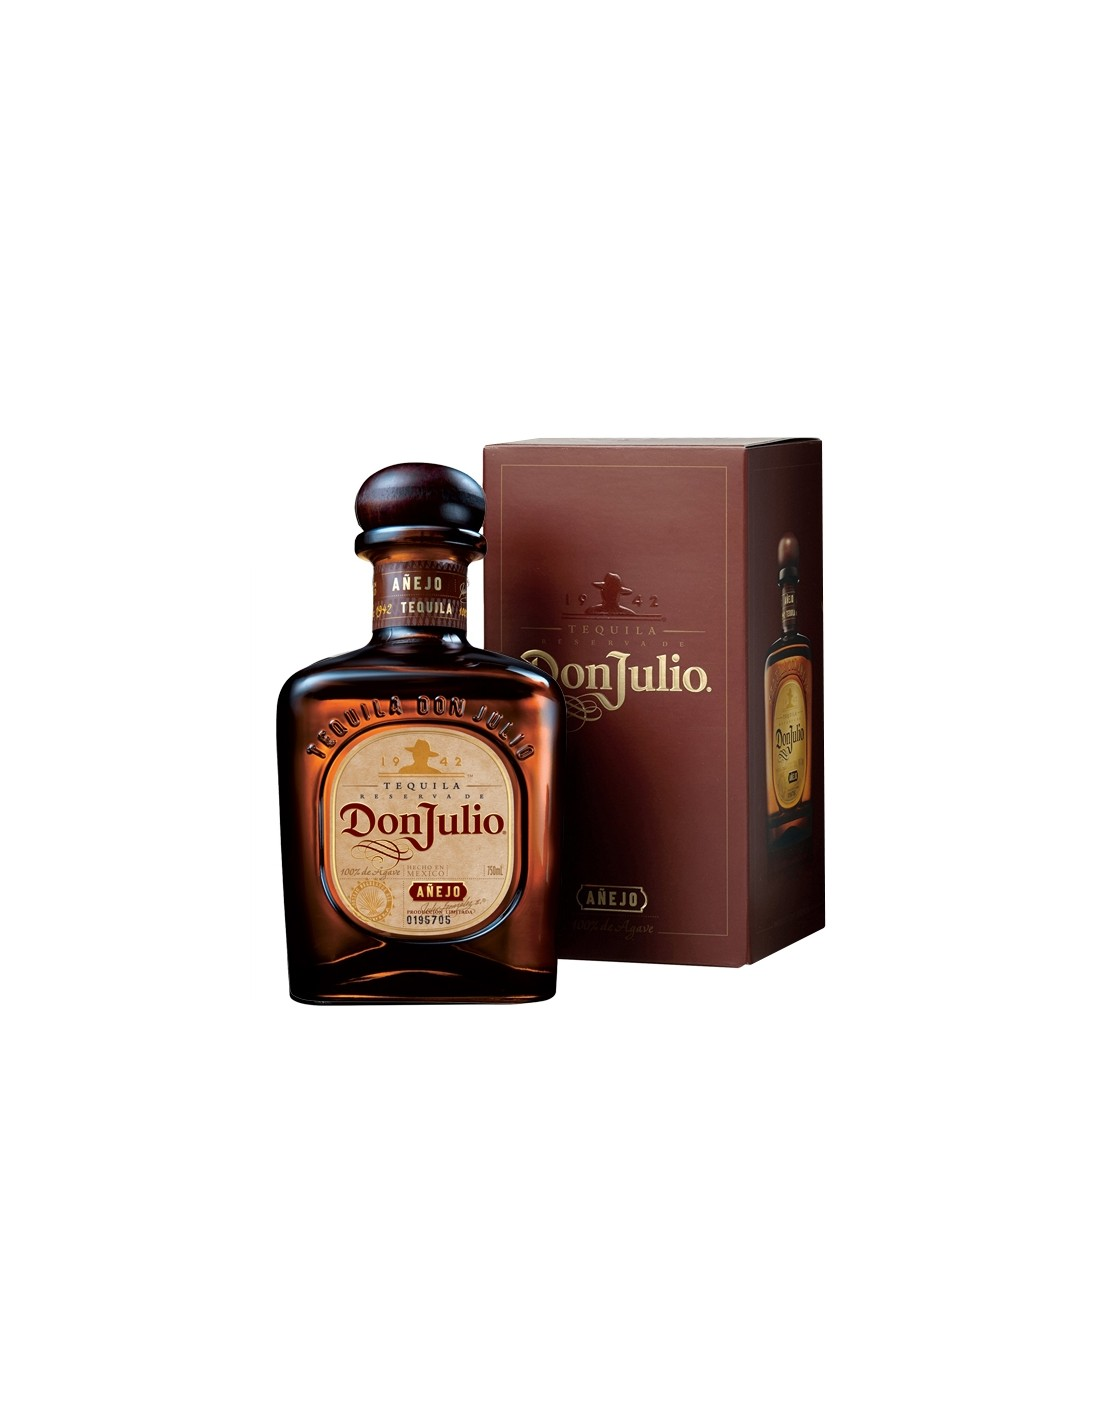 Tequila Don Julio Anejo 0.7L, 35% alc., Mexic